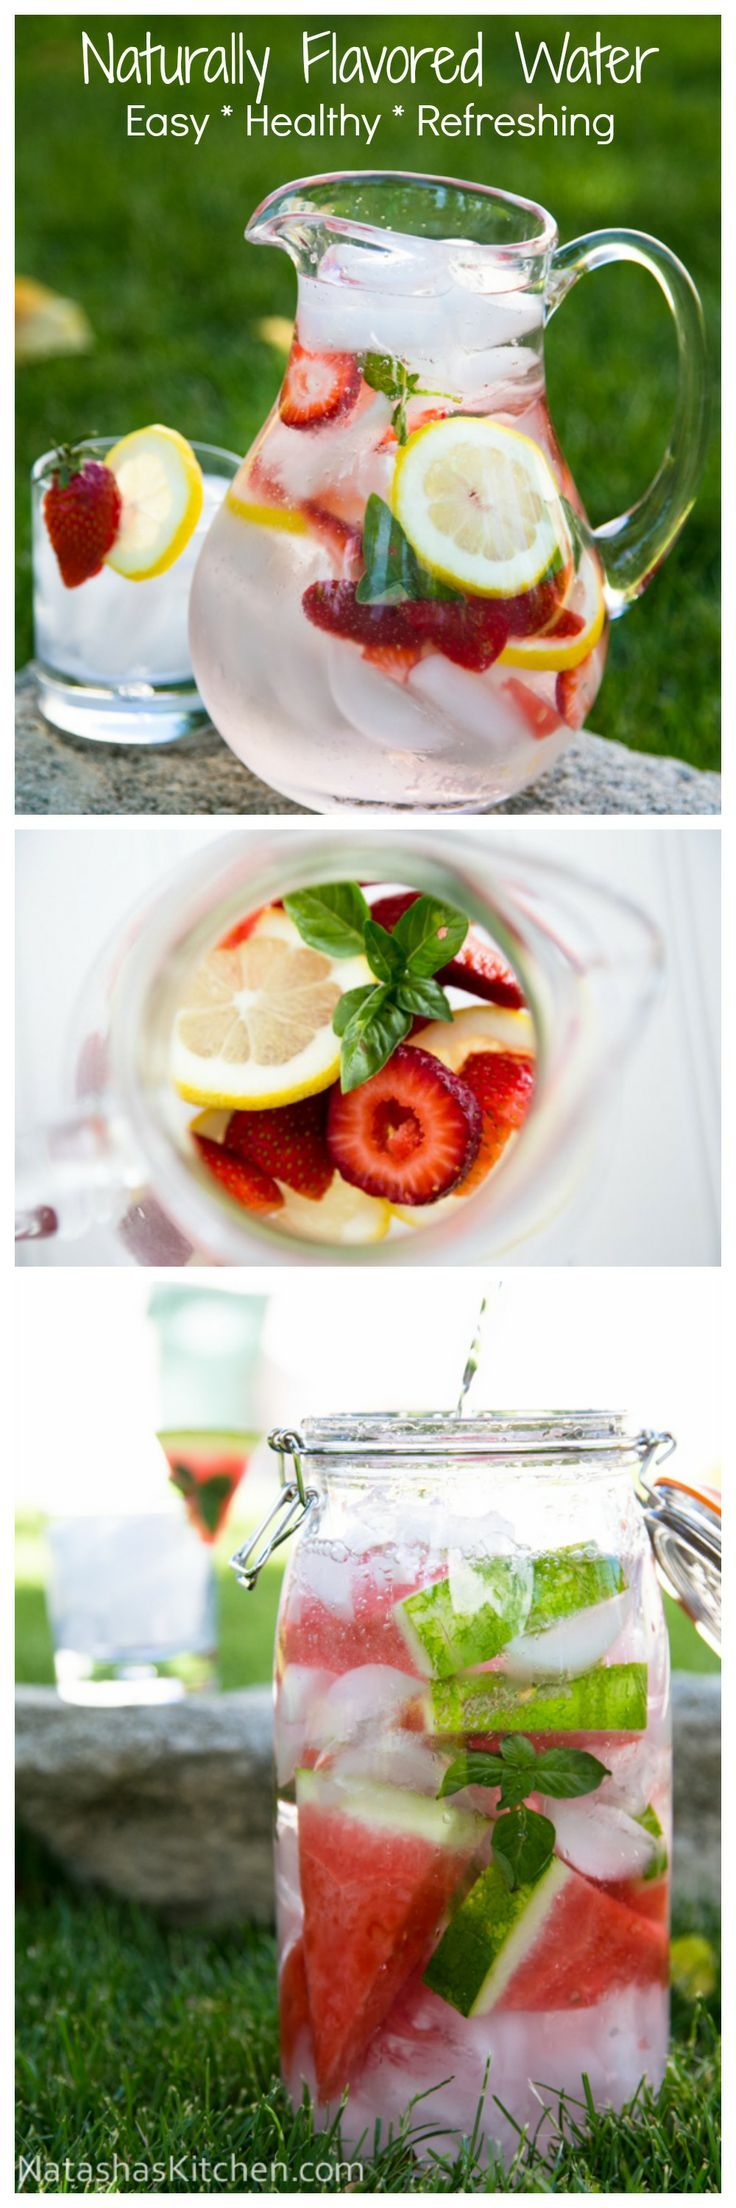 """""""Drinking naturally flavored detox water is the healthy way to get you drinking more water! Detox water is so refreshing. Your waistline will thank you!"""